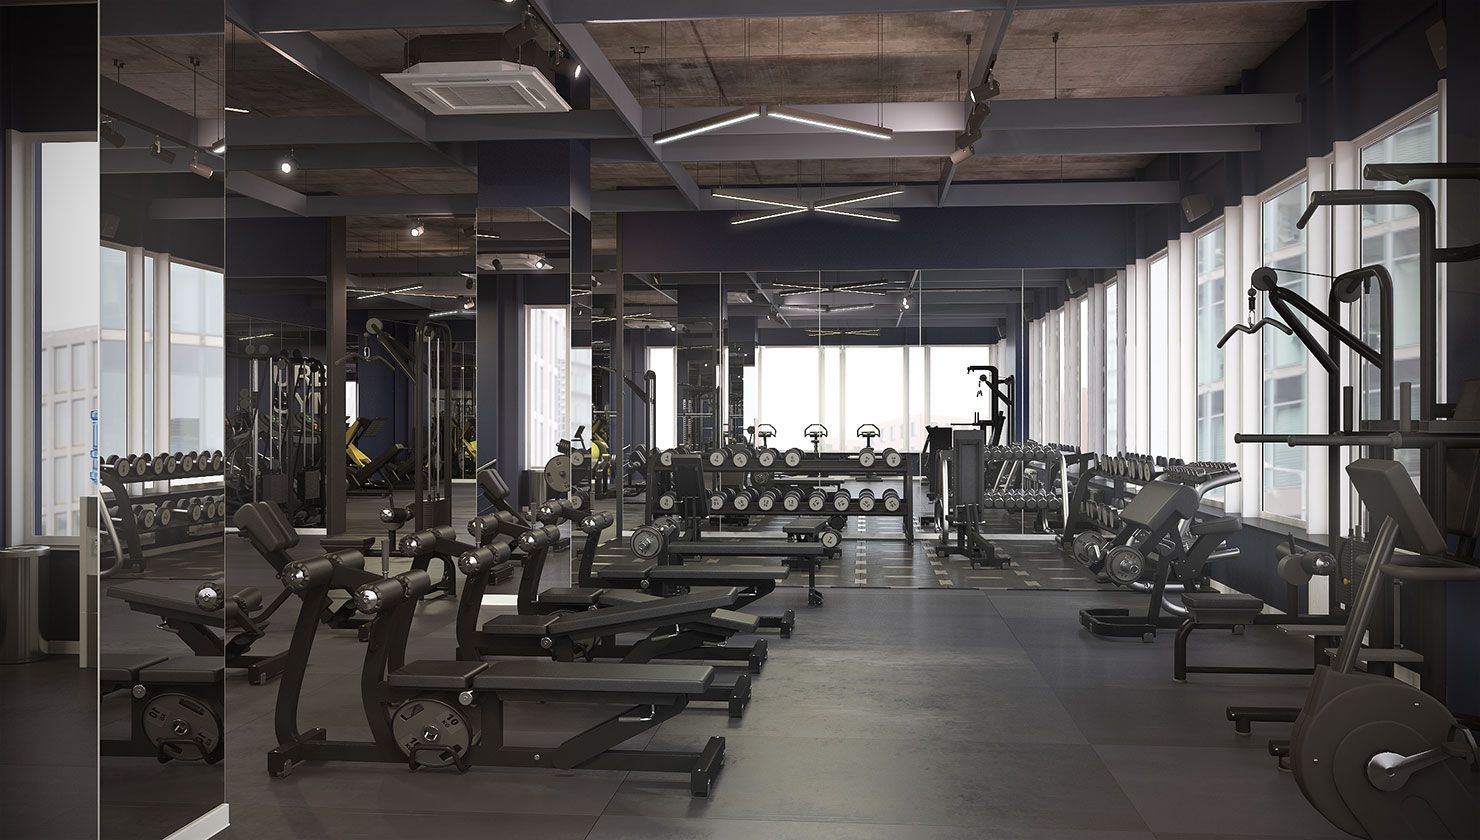 3d Model Of Gym Gym Workout Machines 3d Model